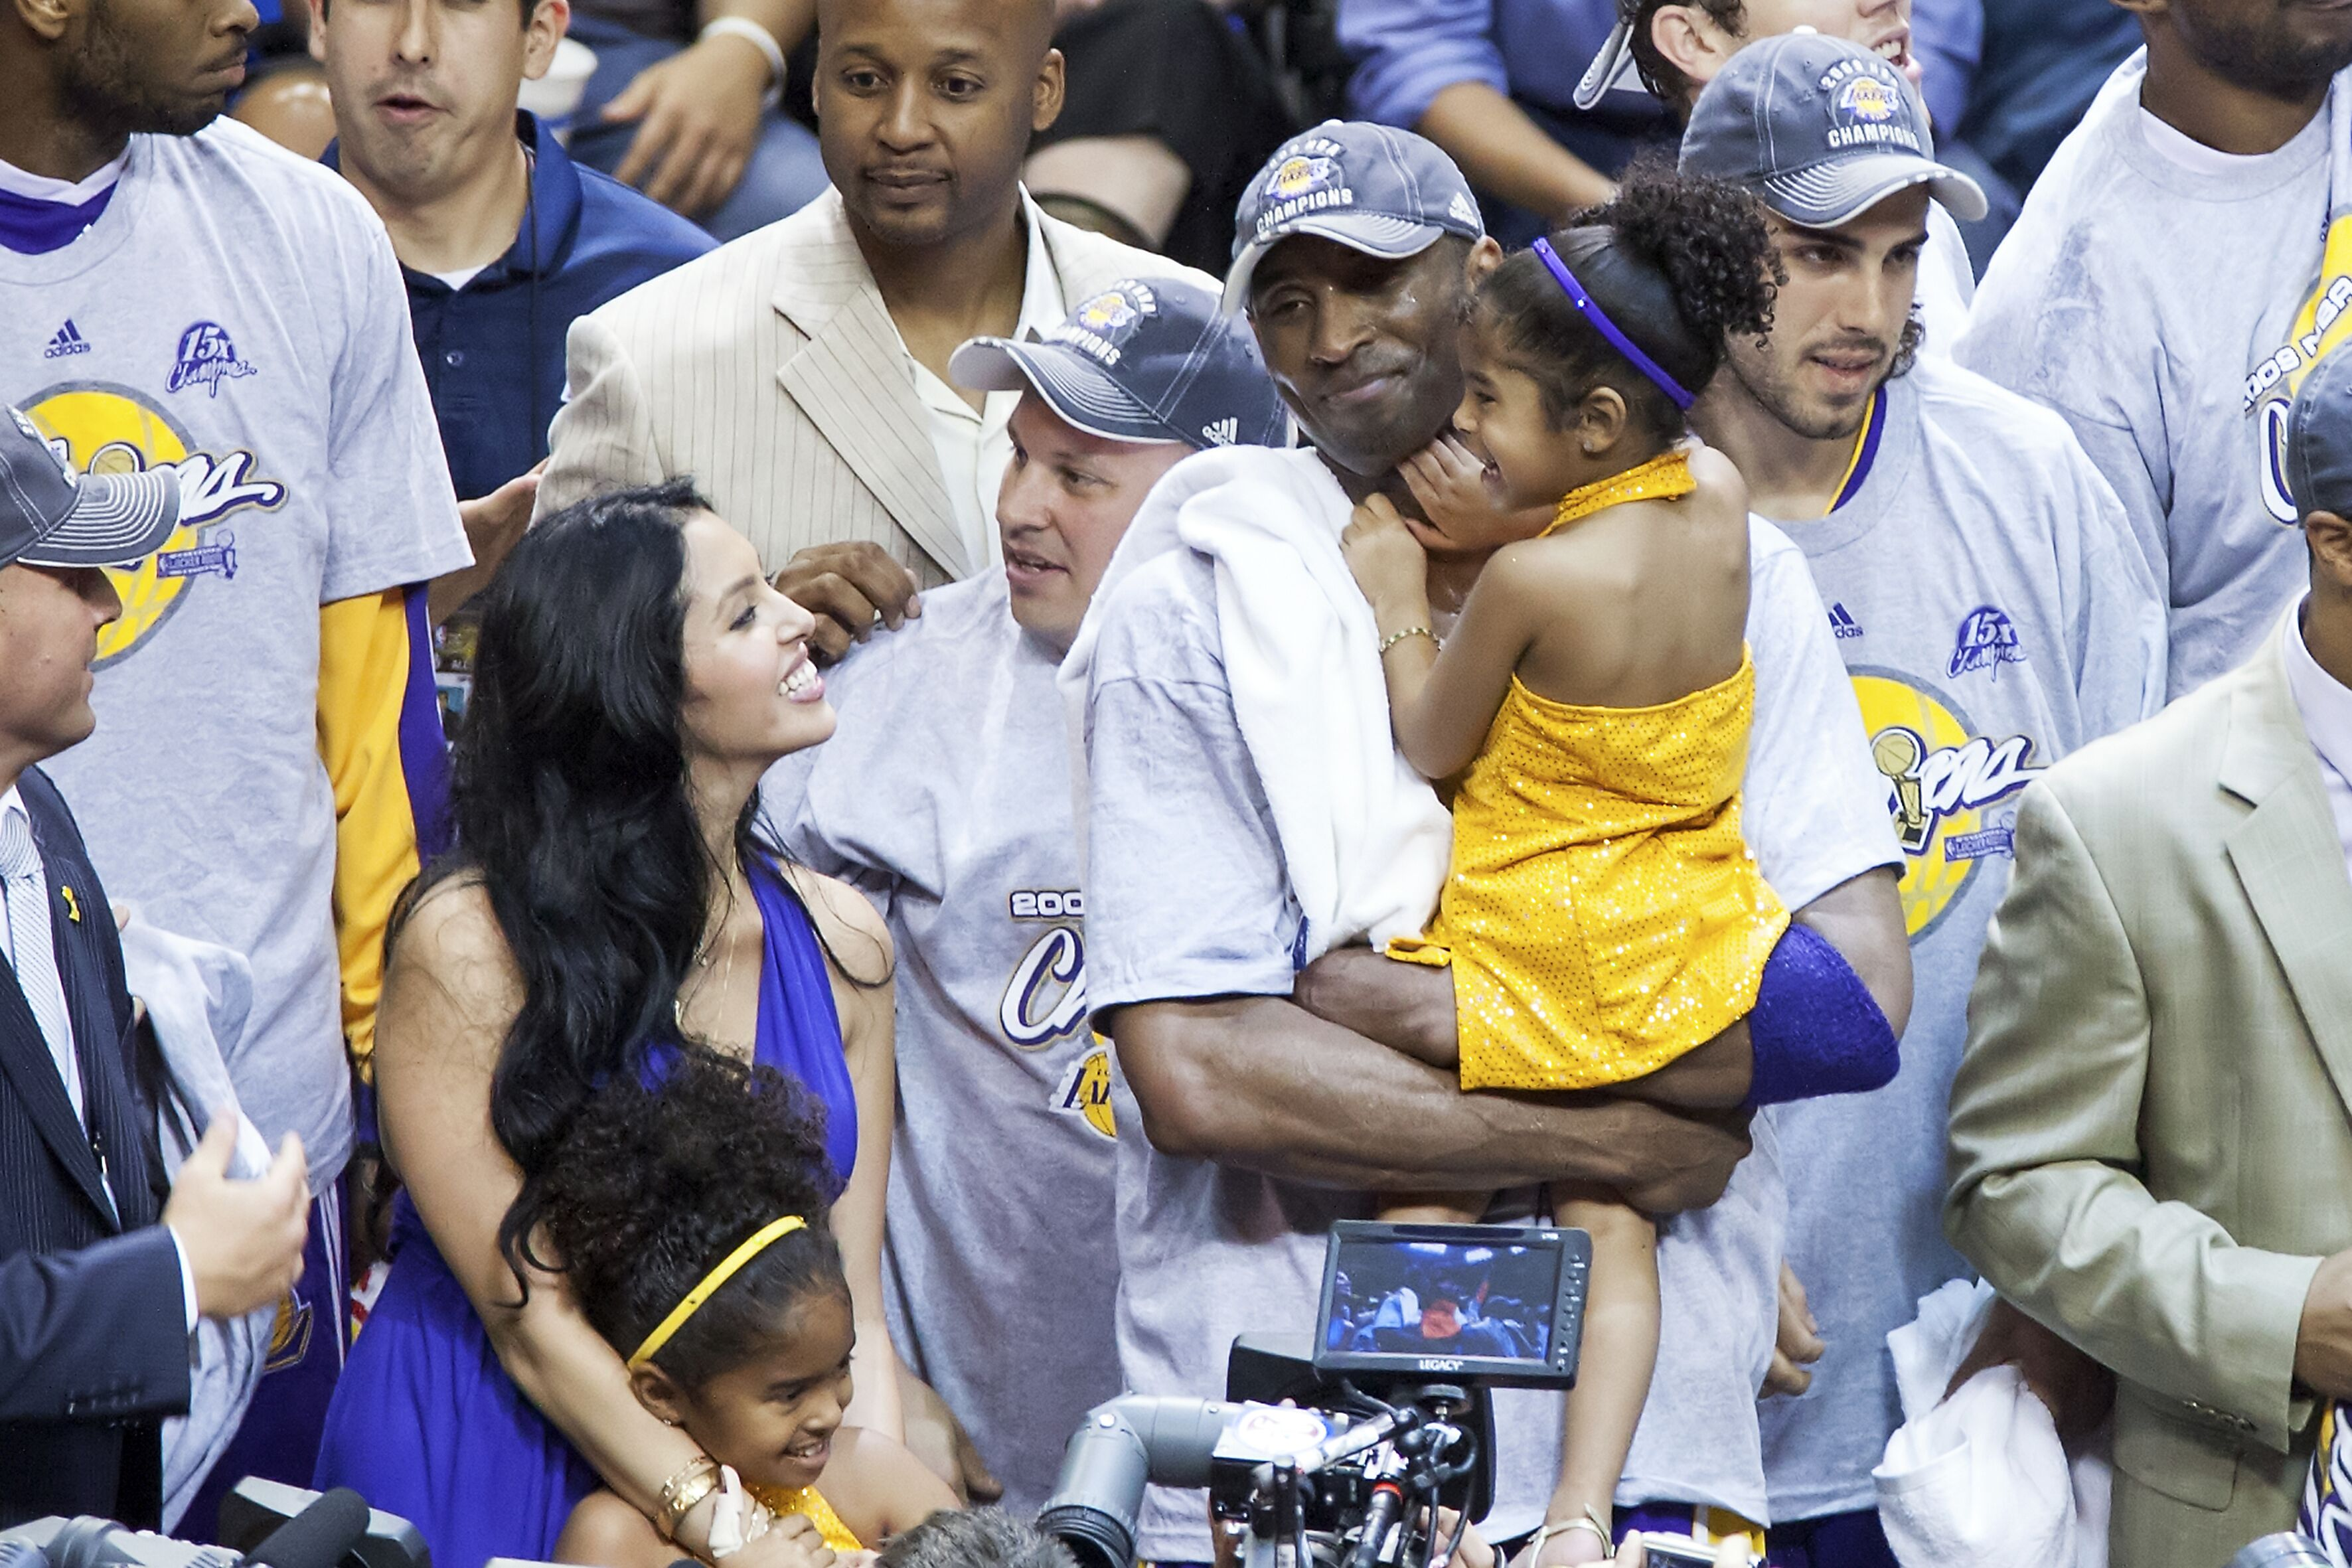 Kobe Bryant and his family at the Game Five of the 2009 NBA Finals against the Orlando Magic. | Source: Getty Images